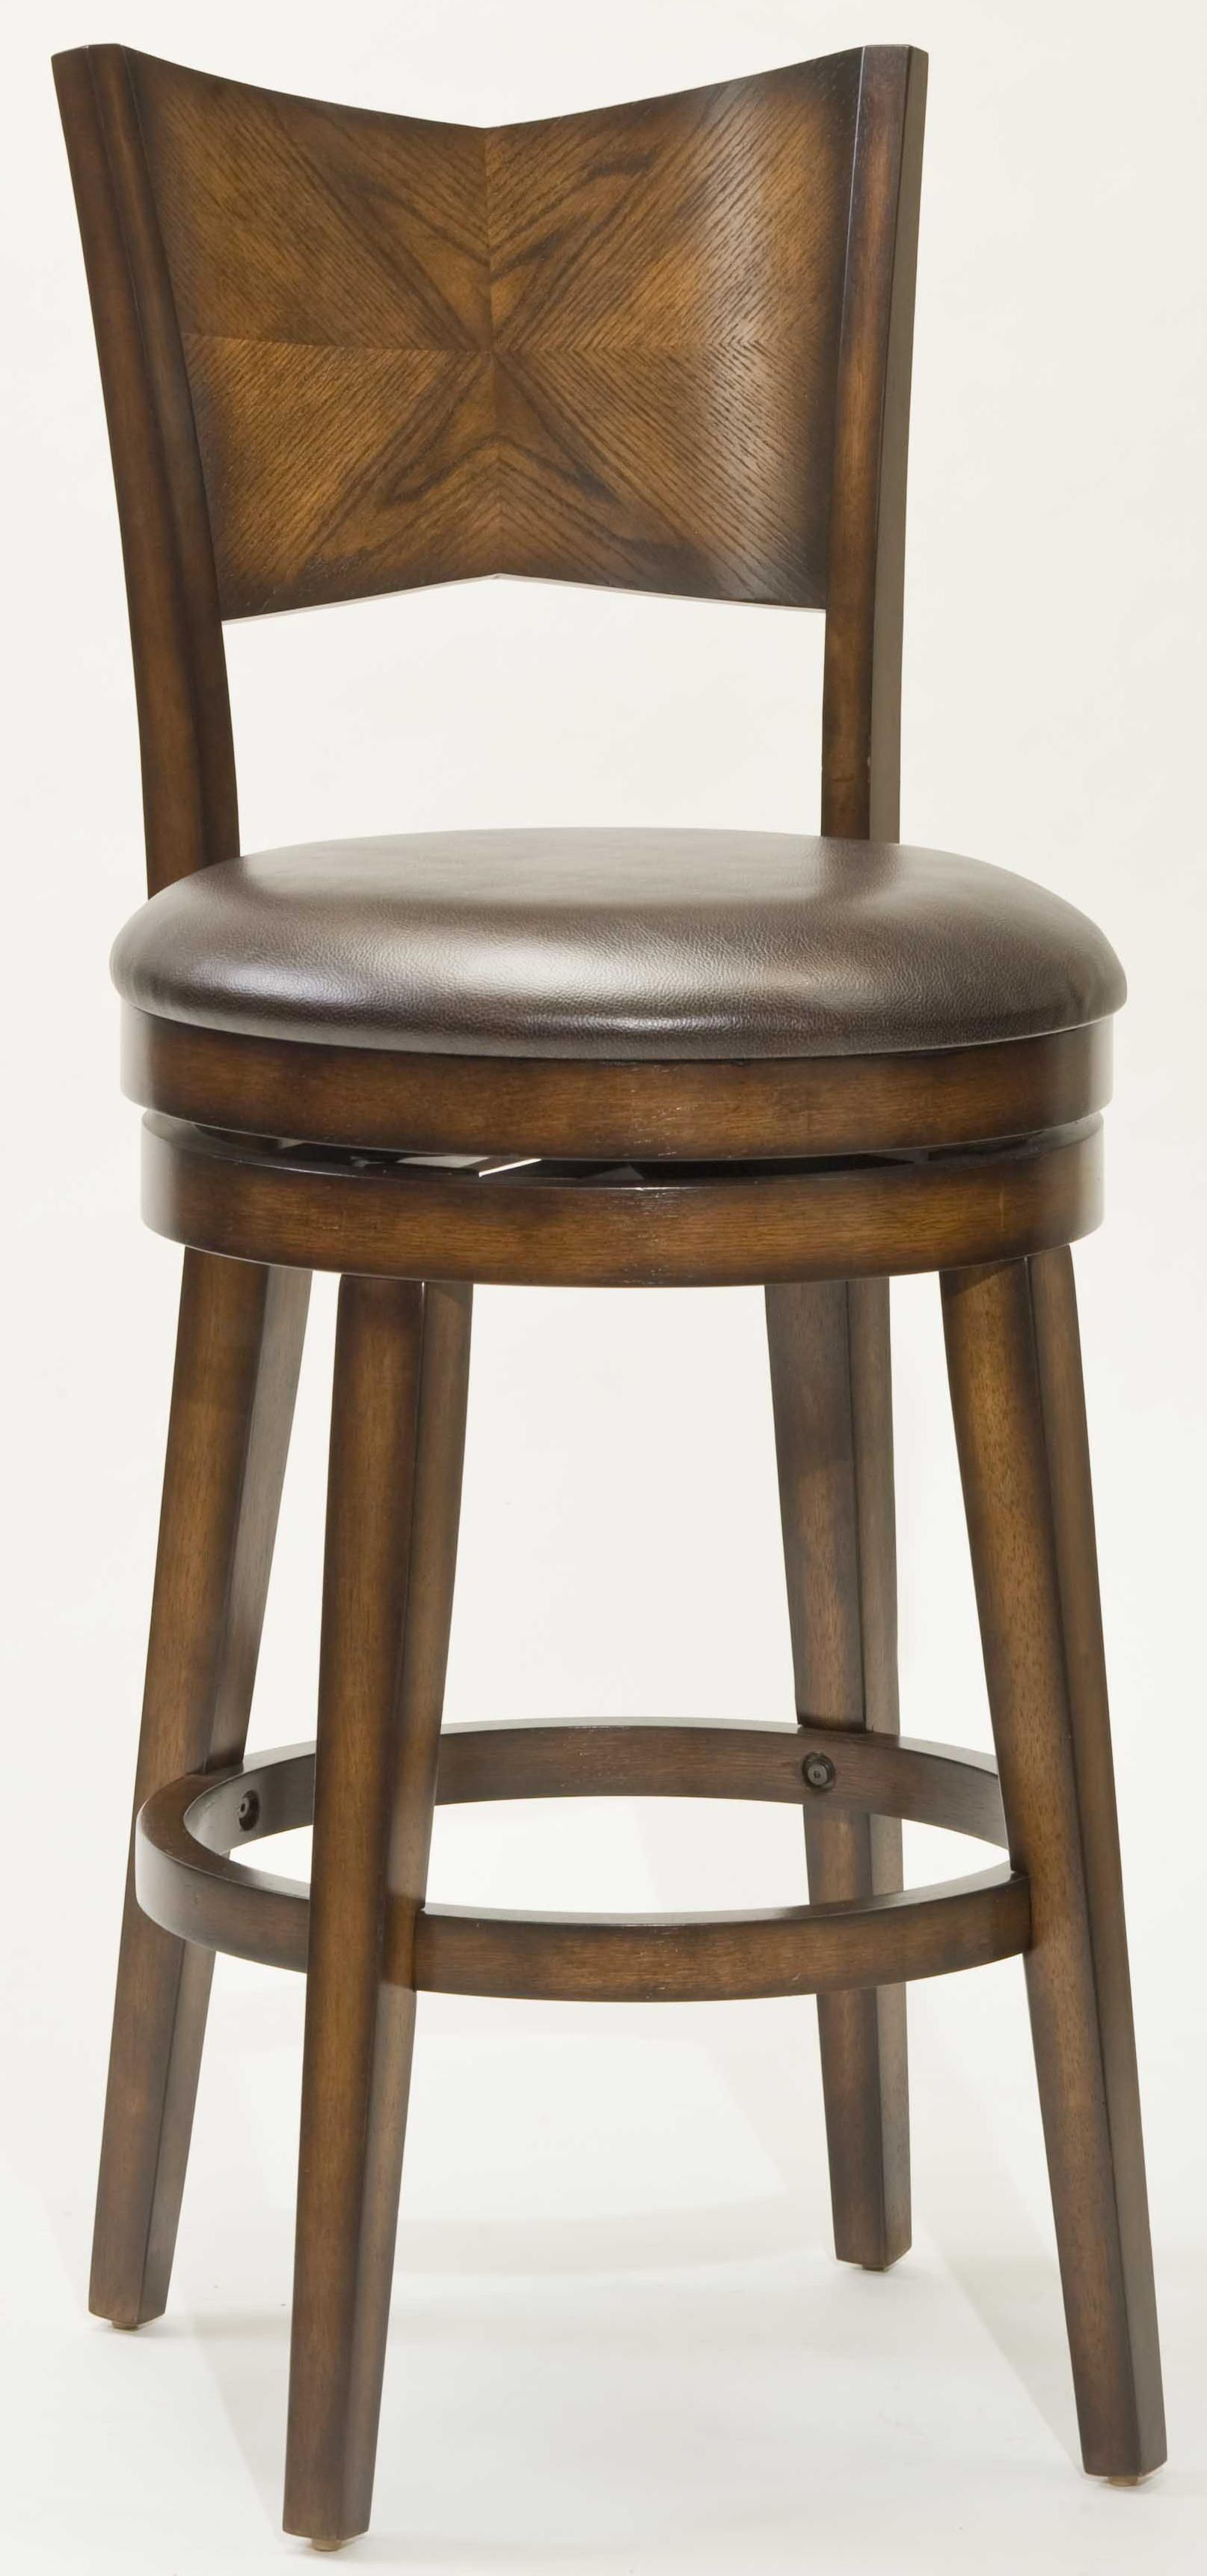 Terrific Vintage Brown Leather Round Seat Counter Height Stools With Mahogany Wooden Materials Frame To Decorate Rustic Dining Areas Furnishing Ideas